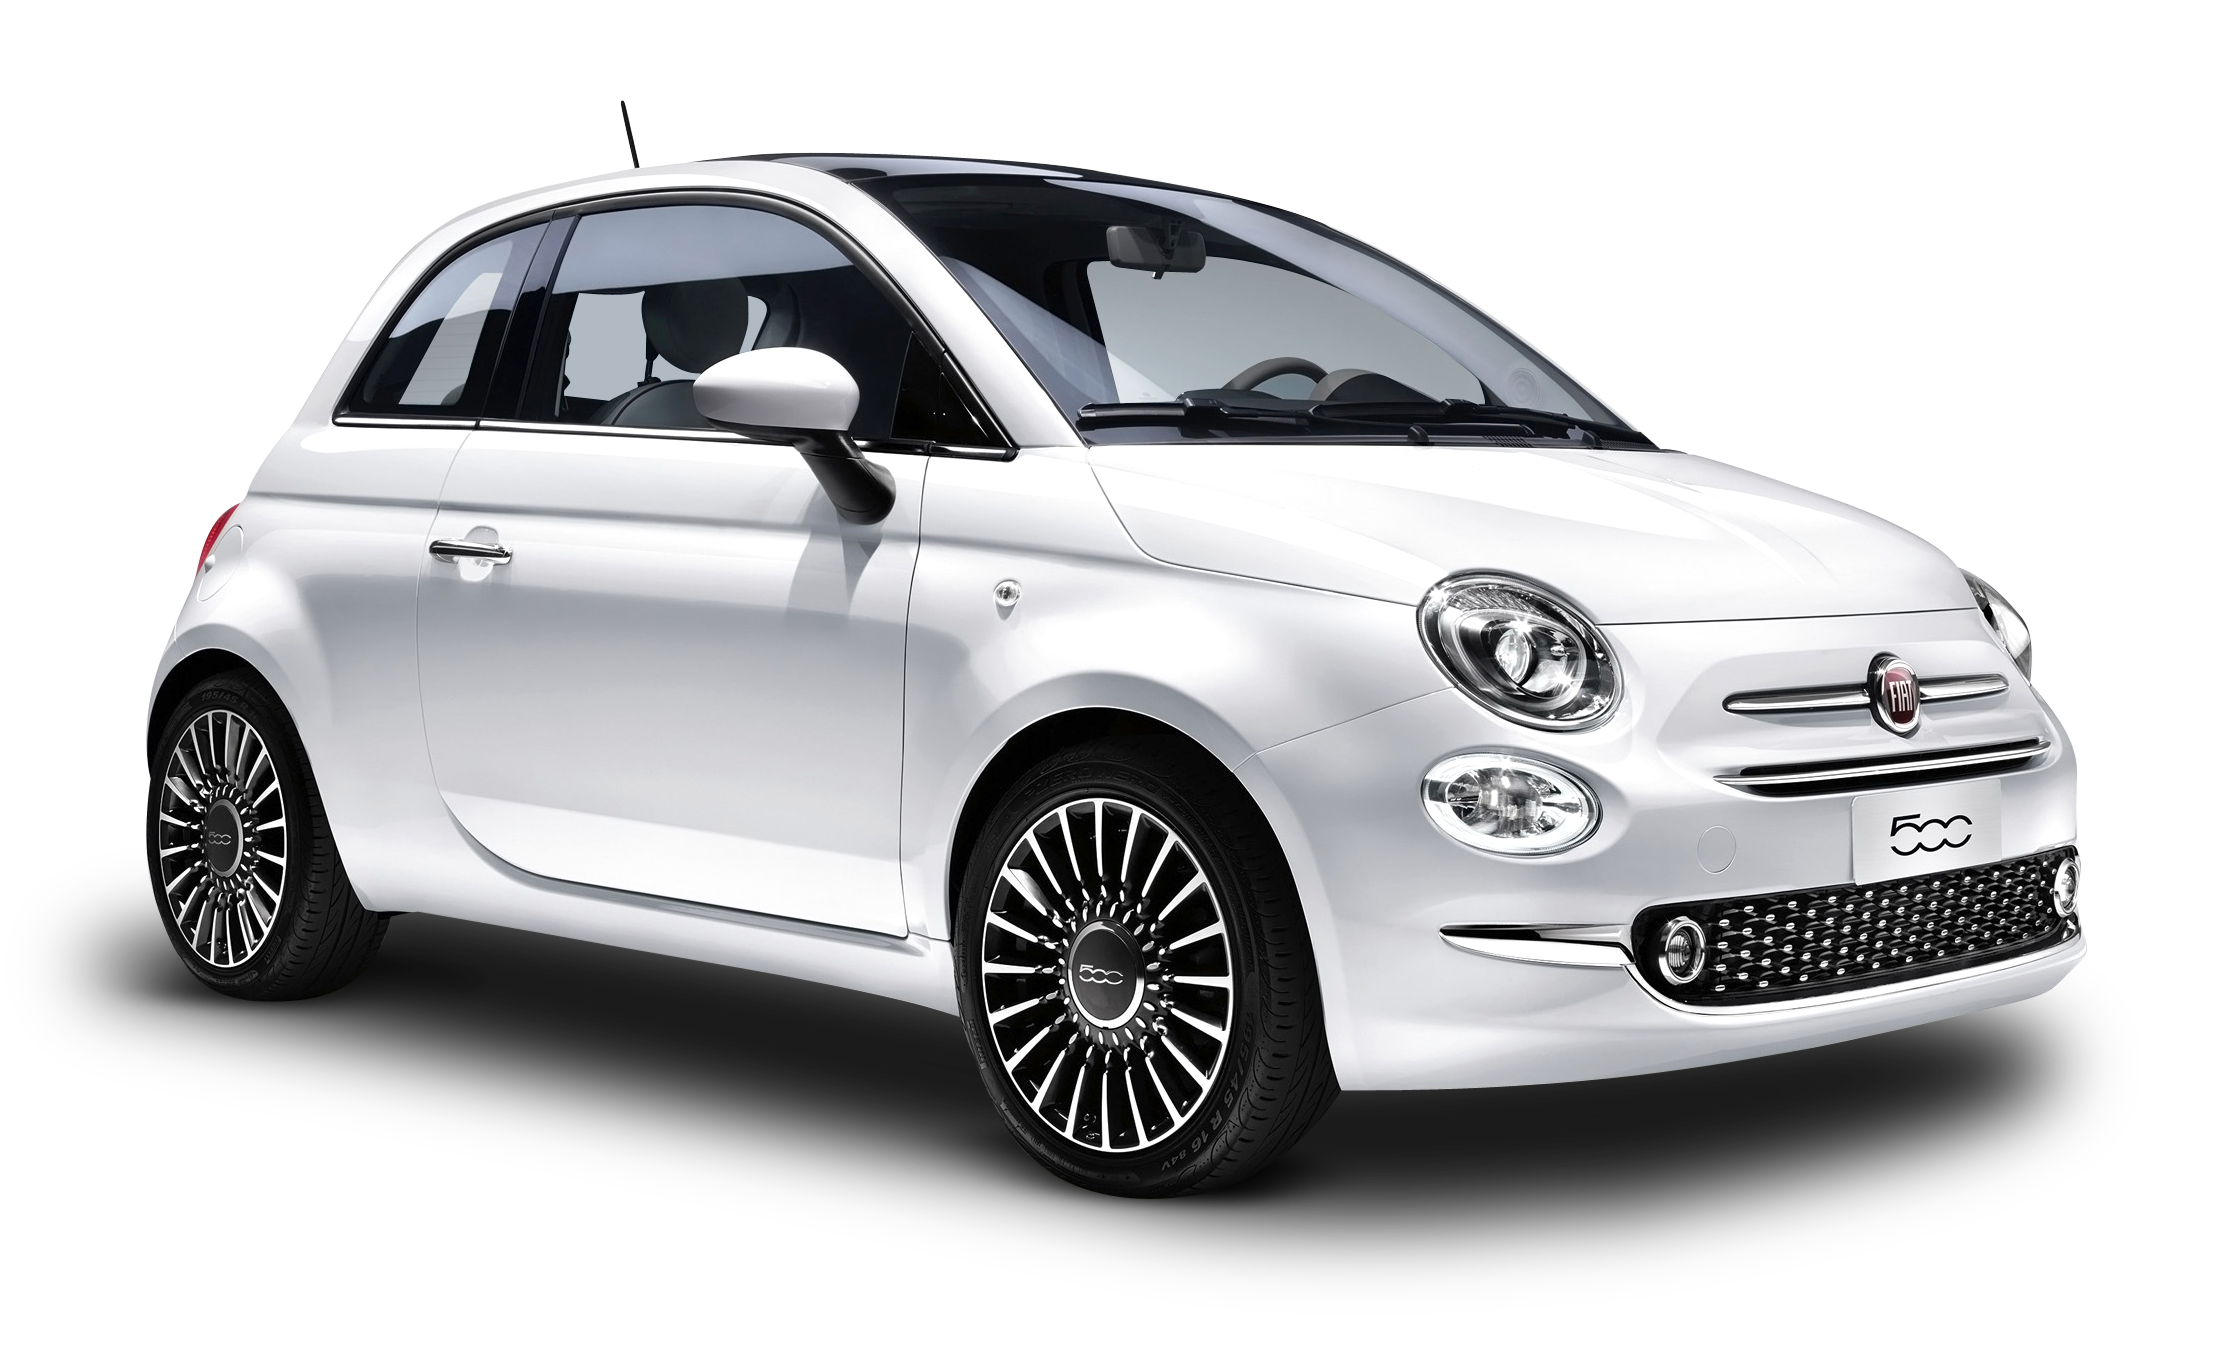 Fiat 500 - new driver top 10 new cars 2020